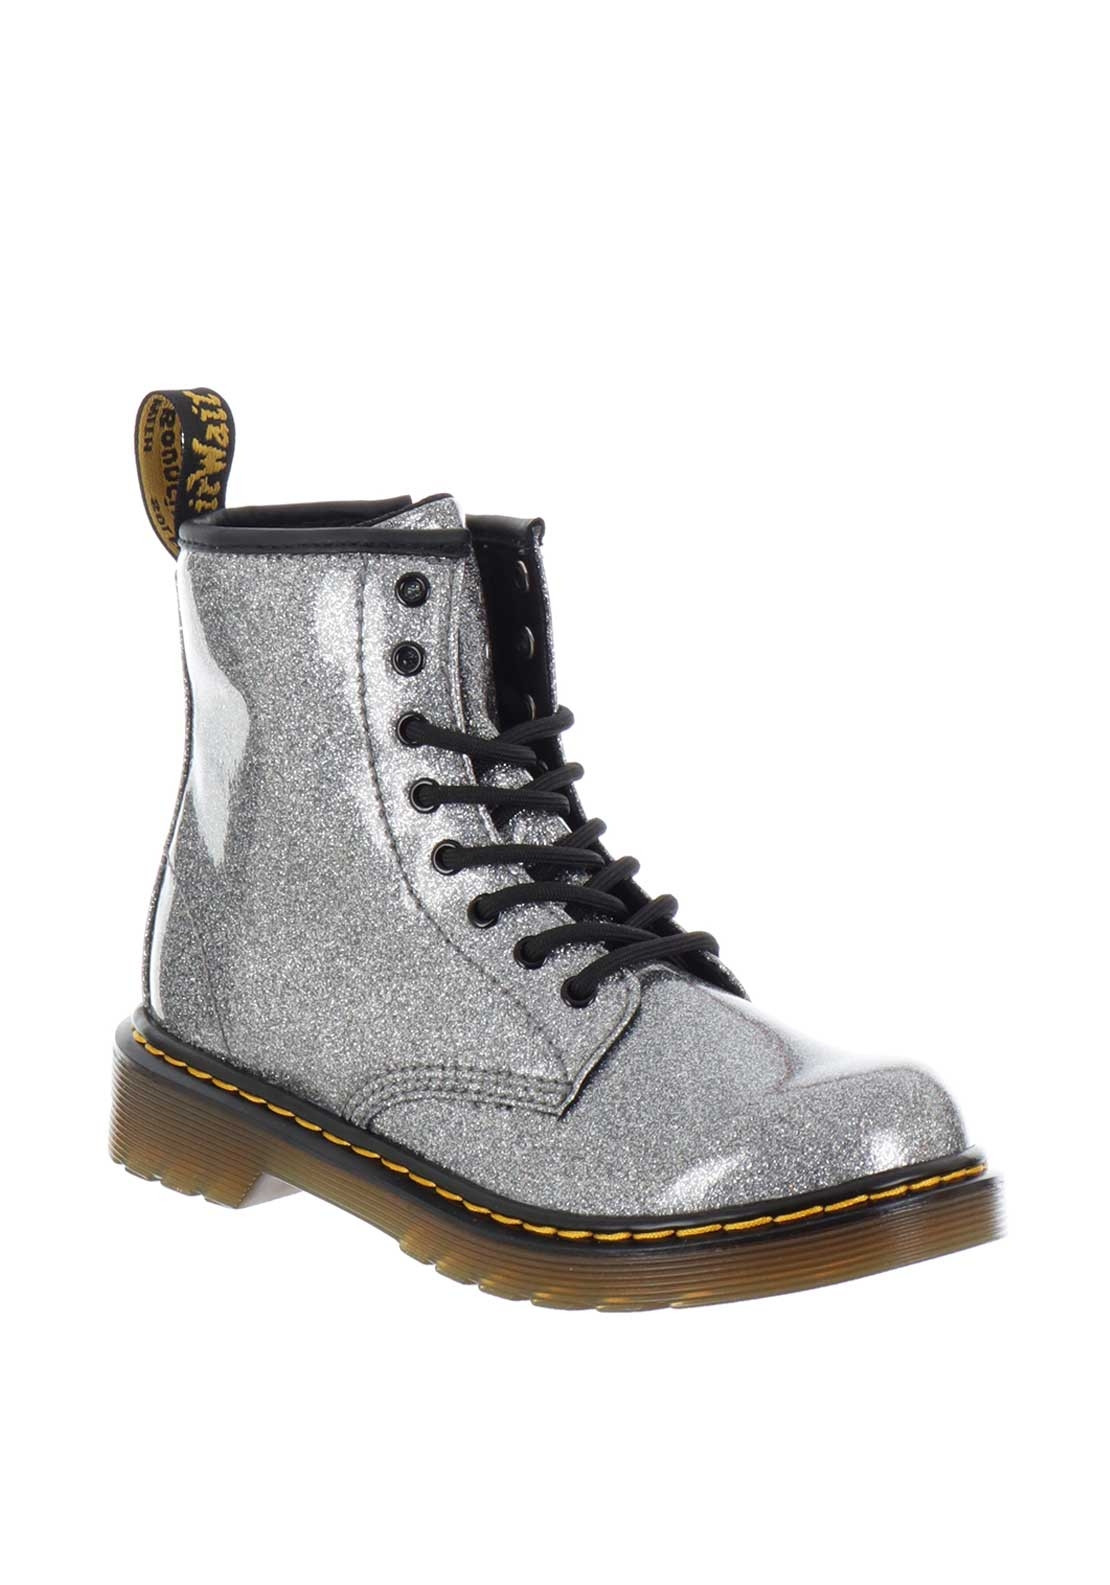 Dr. Martens Youth Girls Glitter Boots